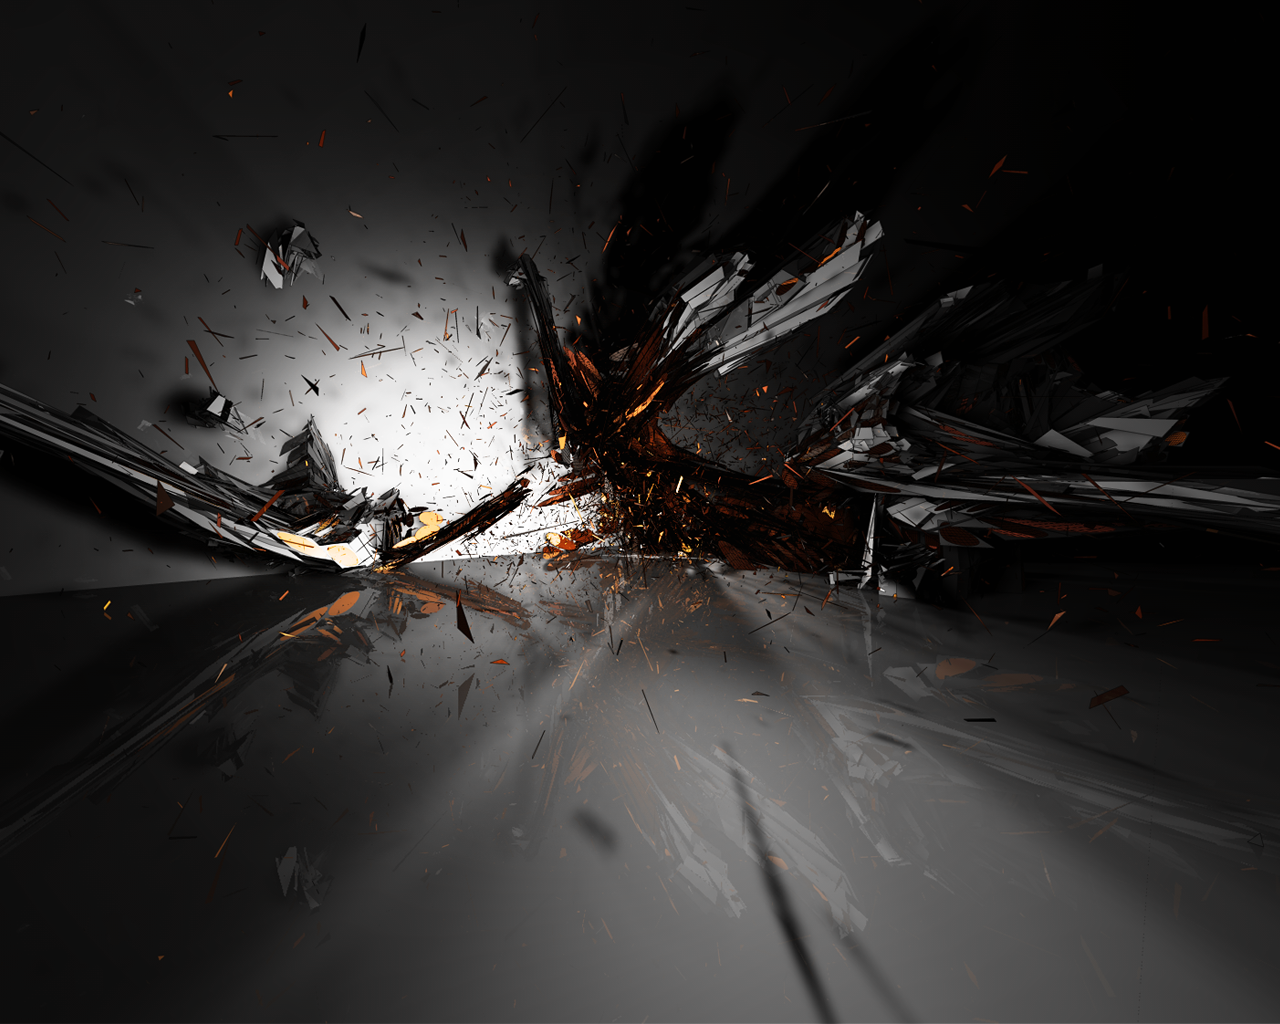 http://3.bp.blogspot.com/-hiBA2VfBLQQ/T9eBm-9NBzI/AAAAAAAAA5U/o2fhtDU8cq4/s1600/hd-wallpaper-abstract-1.png